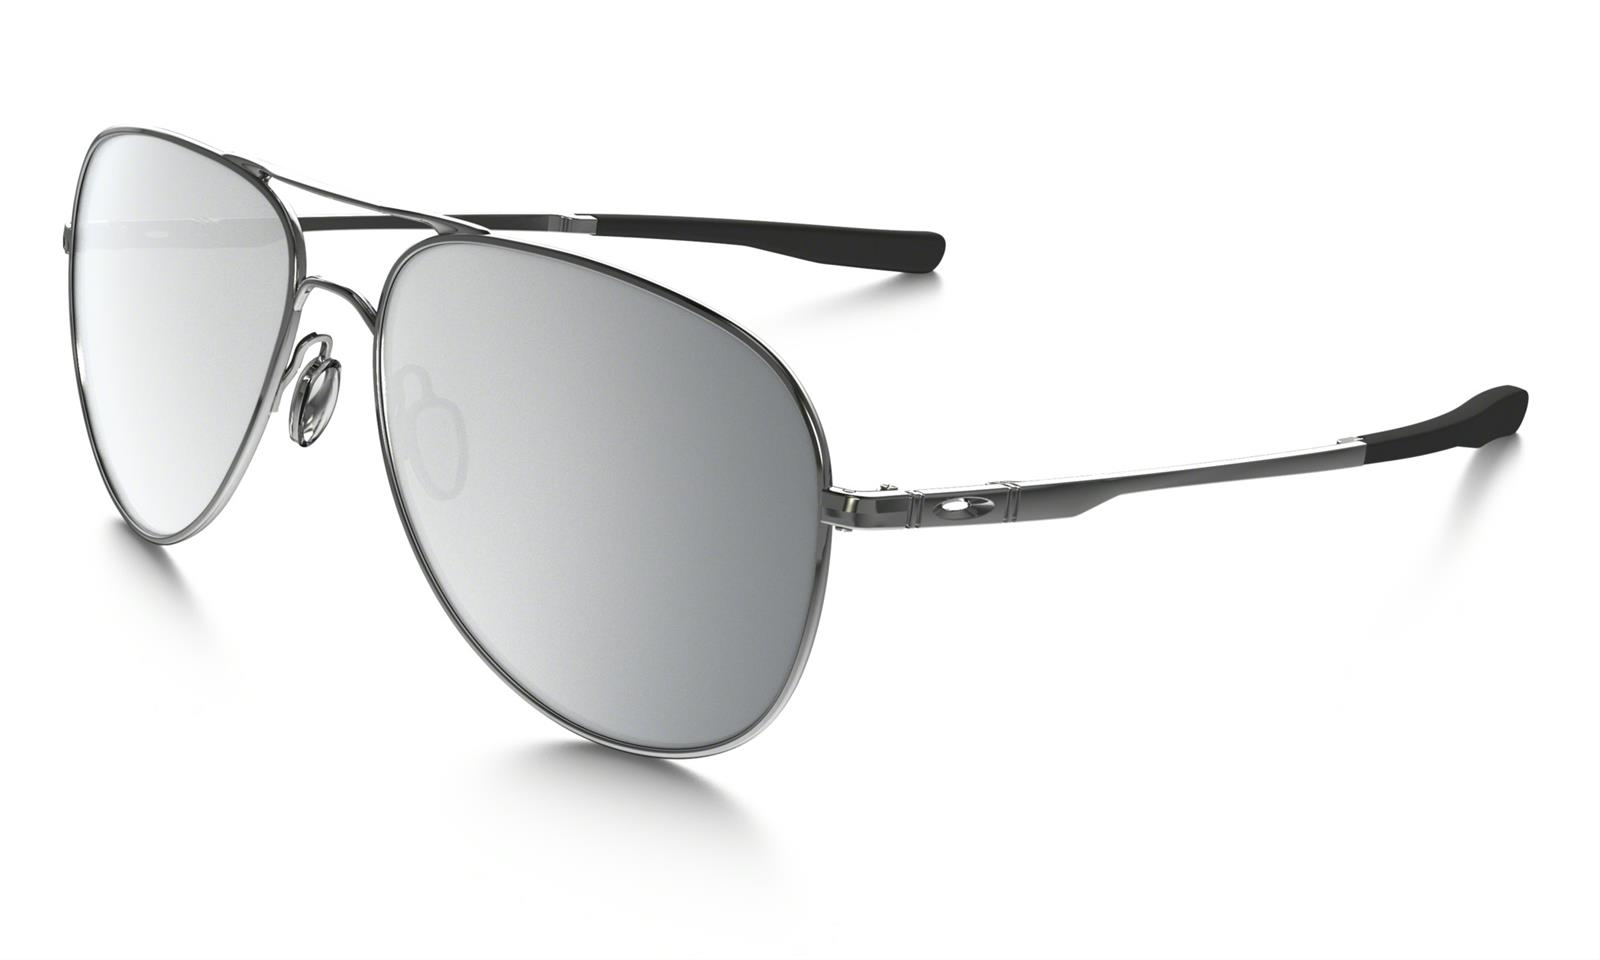 a752ba5abd8 Oakley Elmont Sunglasses OO4119-0860 - Free Shipping on Orders Over  99 at  Summit Racing